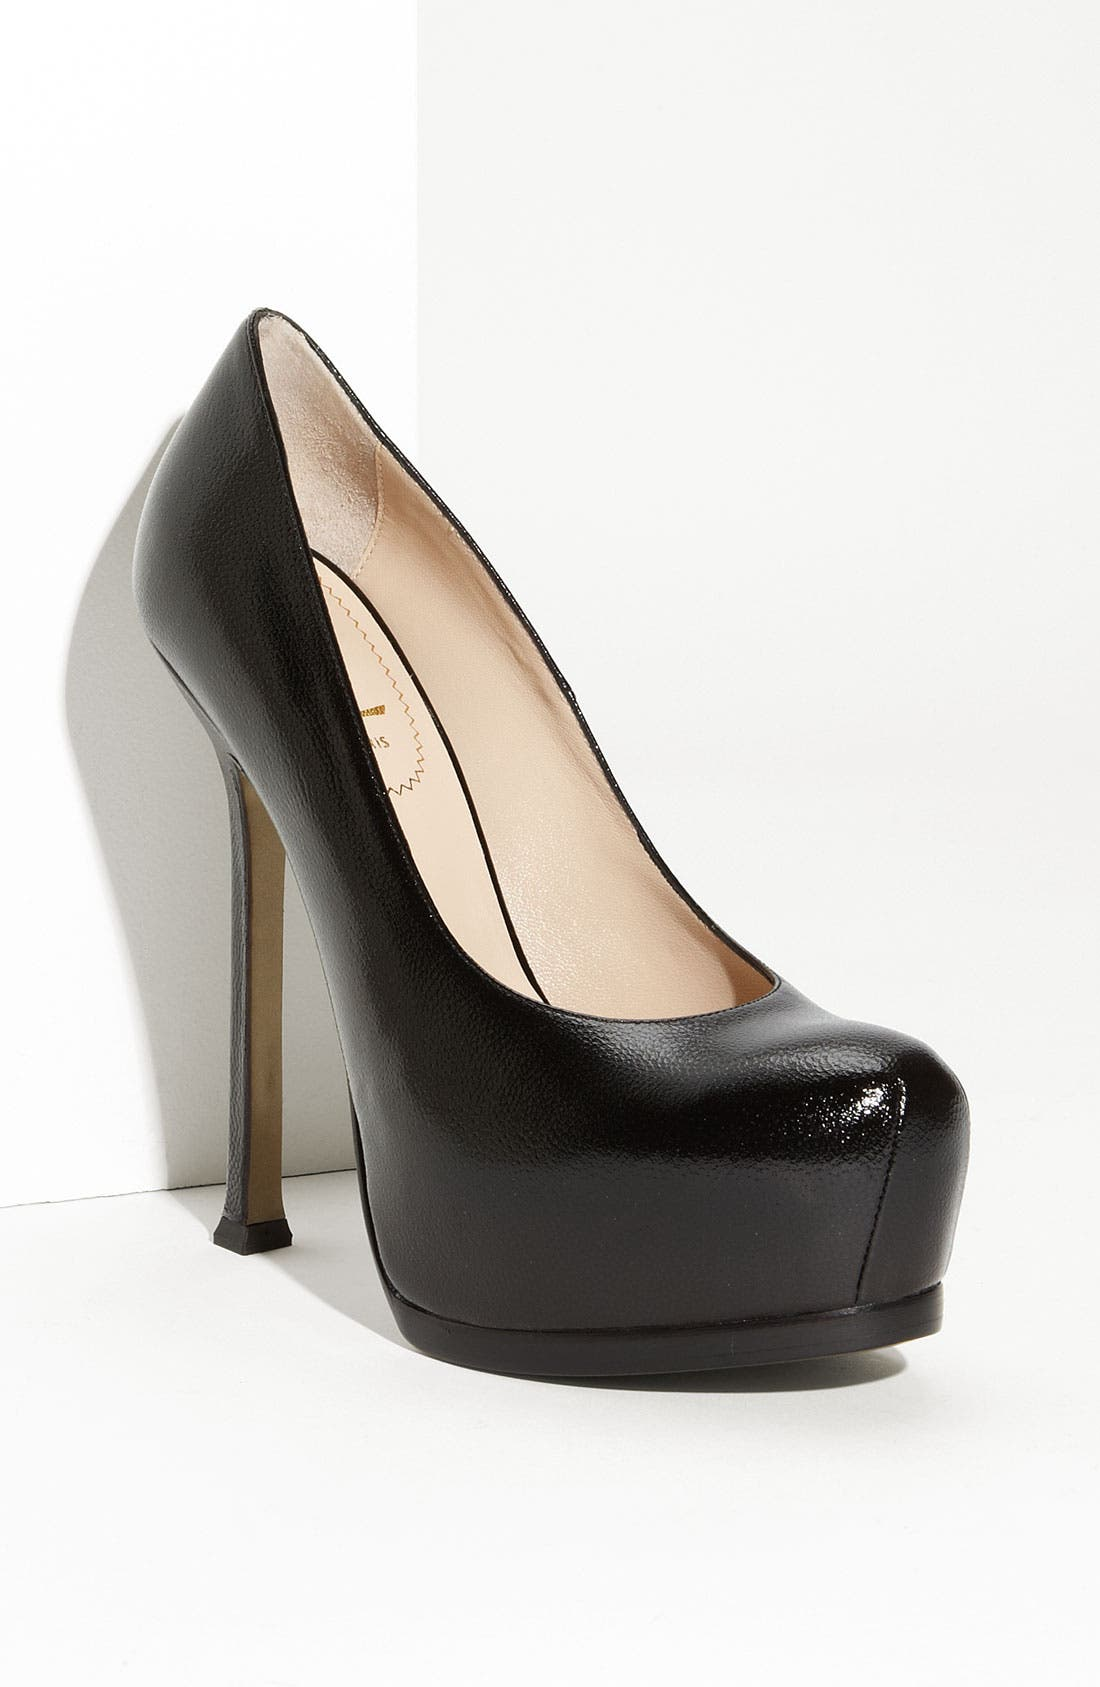 Main Image - Saint Laurent 'Tribute Two' Leather Platform Pump